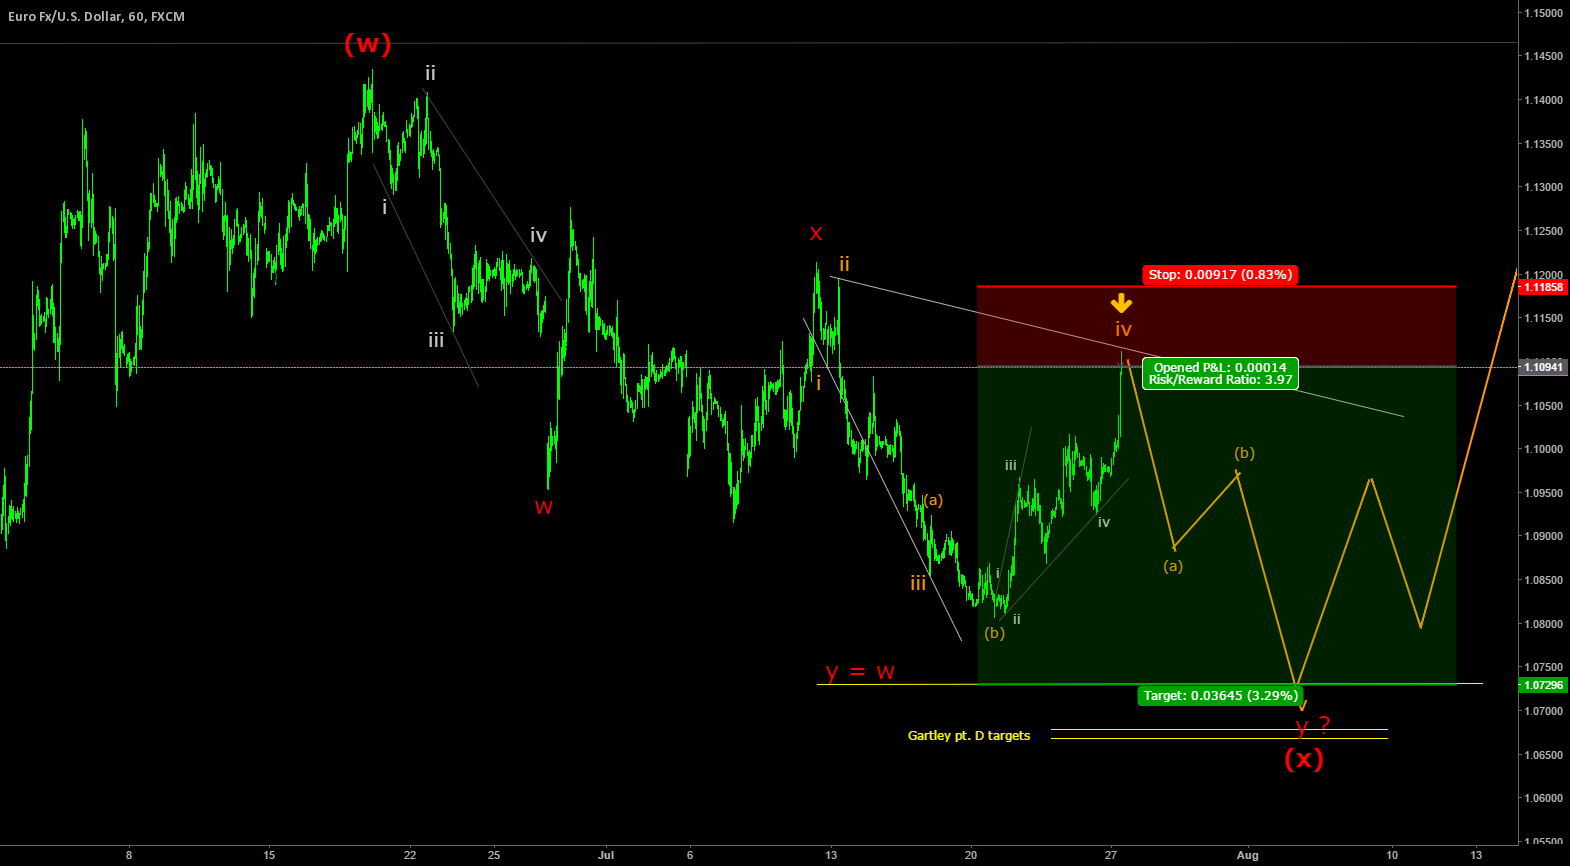 EURUSD setting up a zigzag down